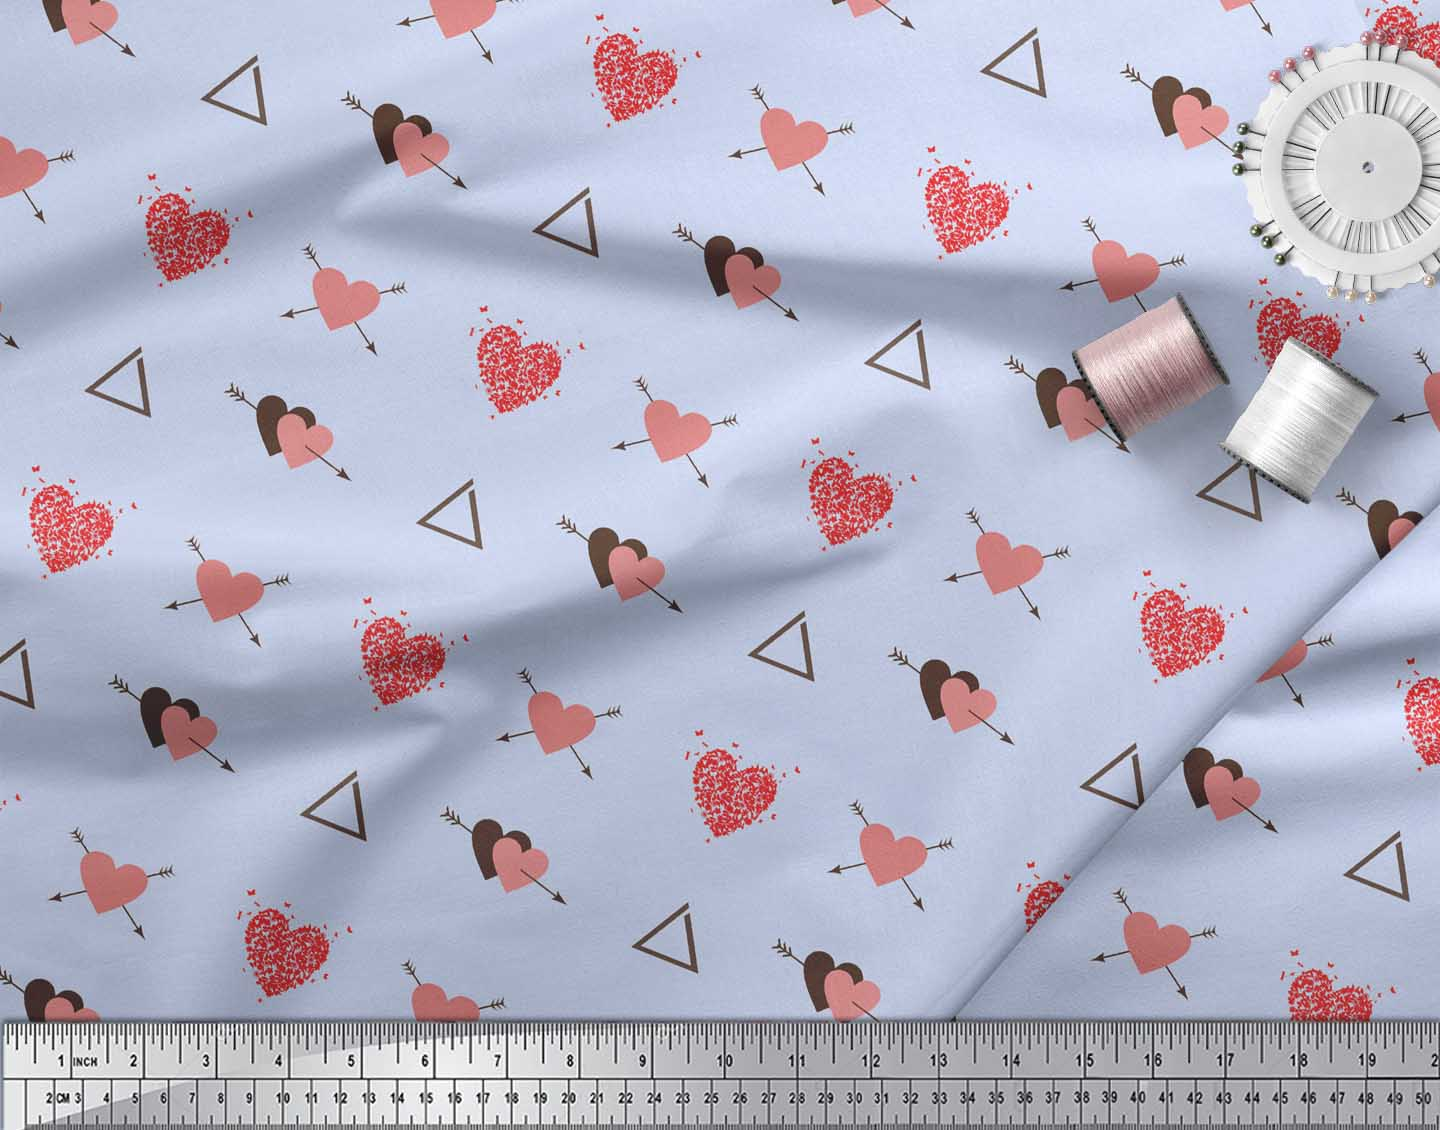 Soimoi-Blue-Cotton-Poplin-Fabric-Triangle-amp-Arrow-Heart-Fabric-Prints-VbE thumbnail 4